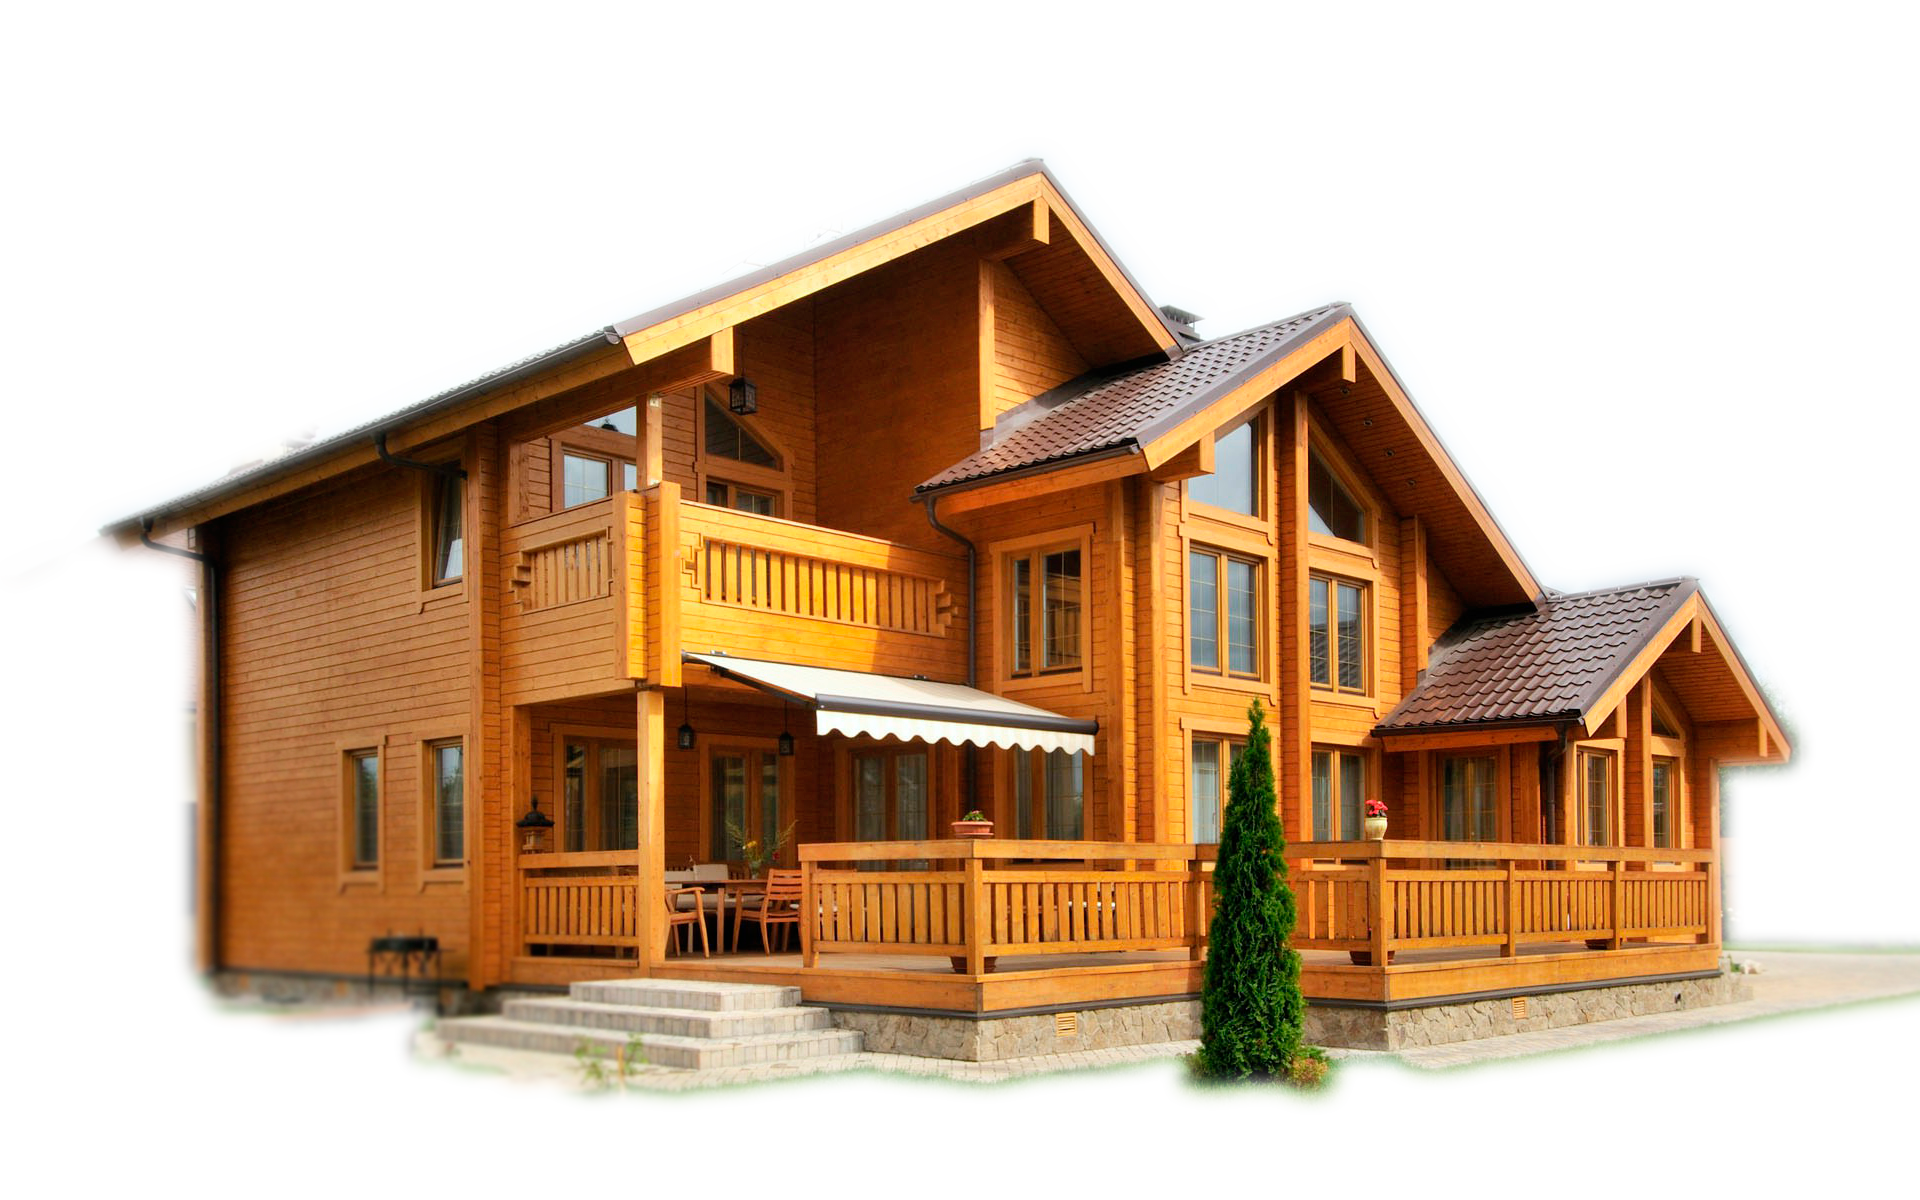 Wood house clipart picture free stock House PNG images free download picture free stock